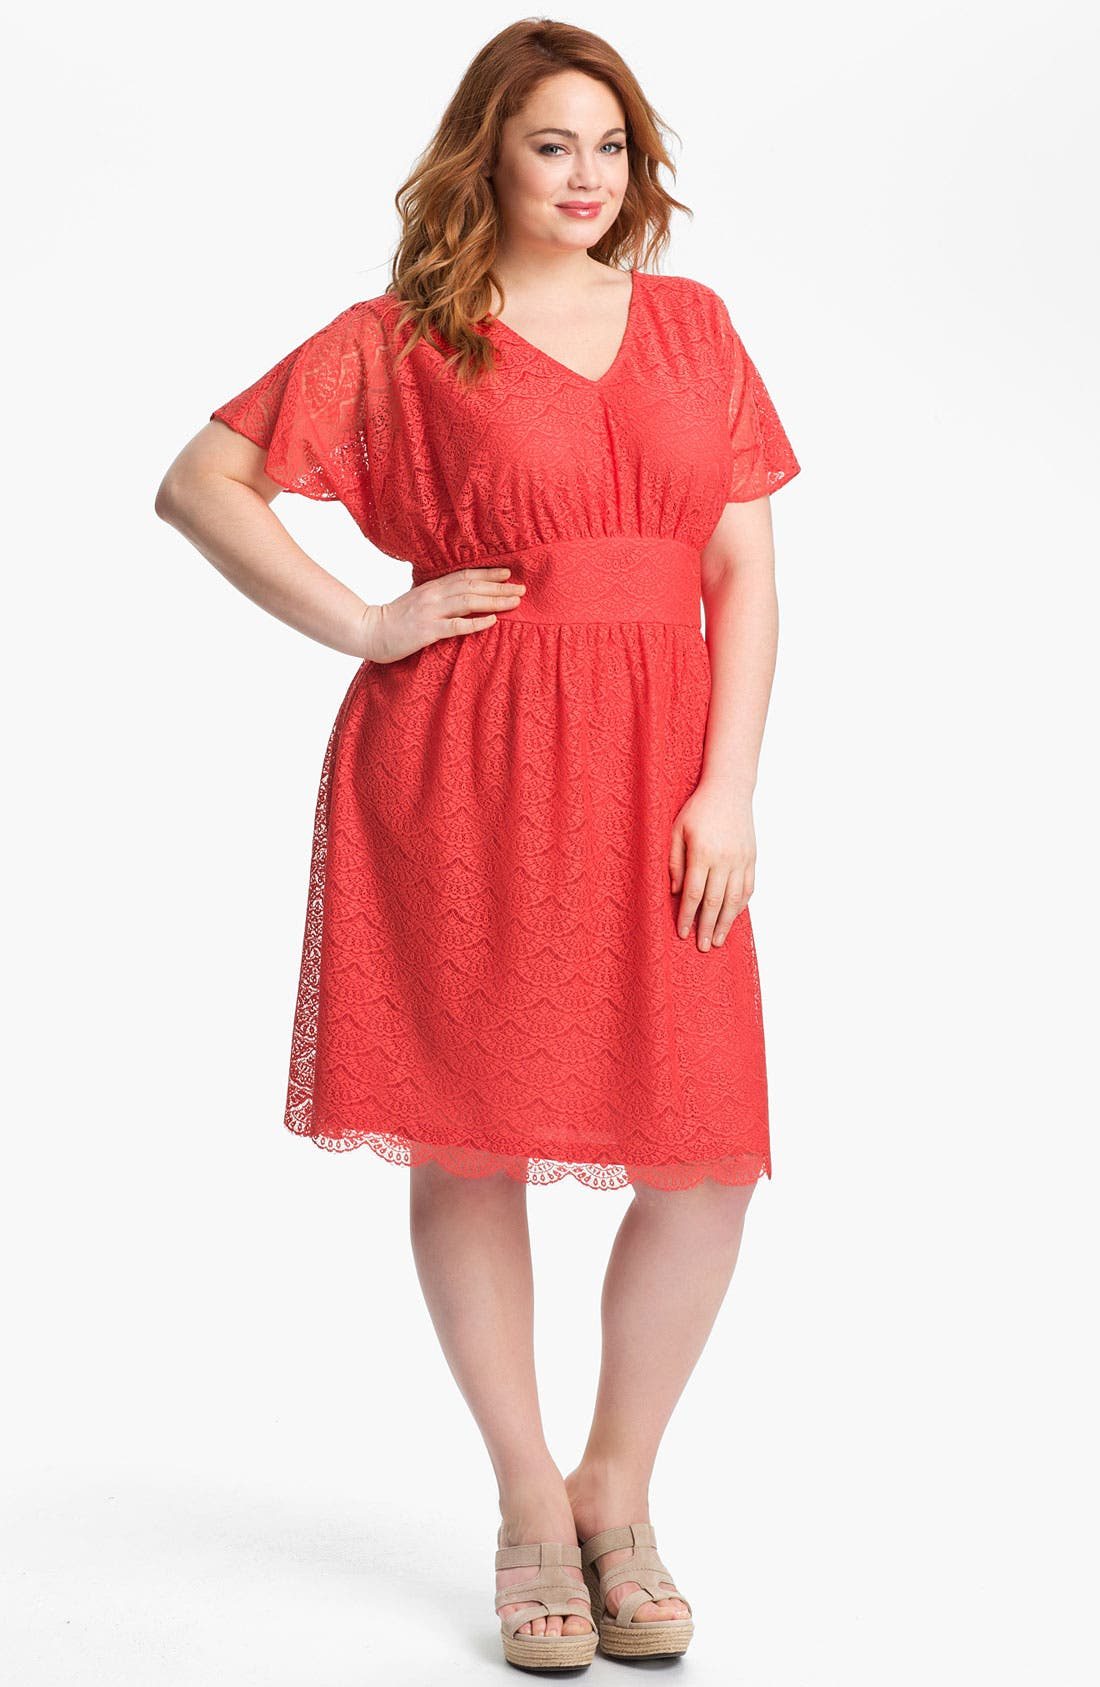 Alternate Image 1 Selected - Adrianna Papell Empire Waist Lace Dress (Plus Size)